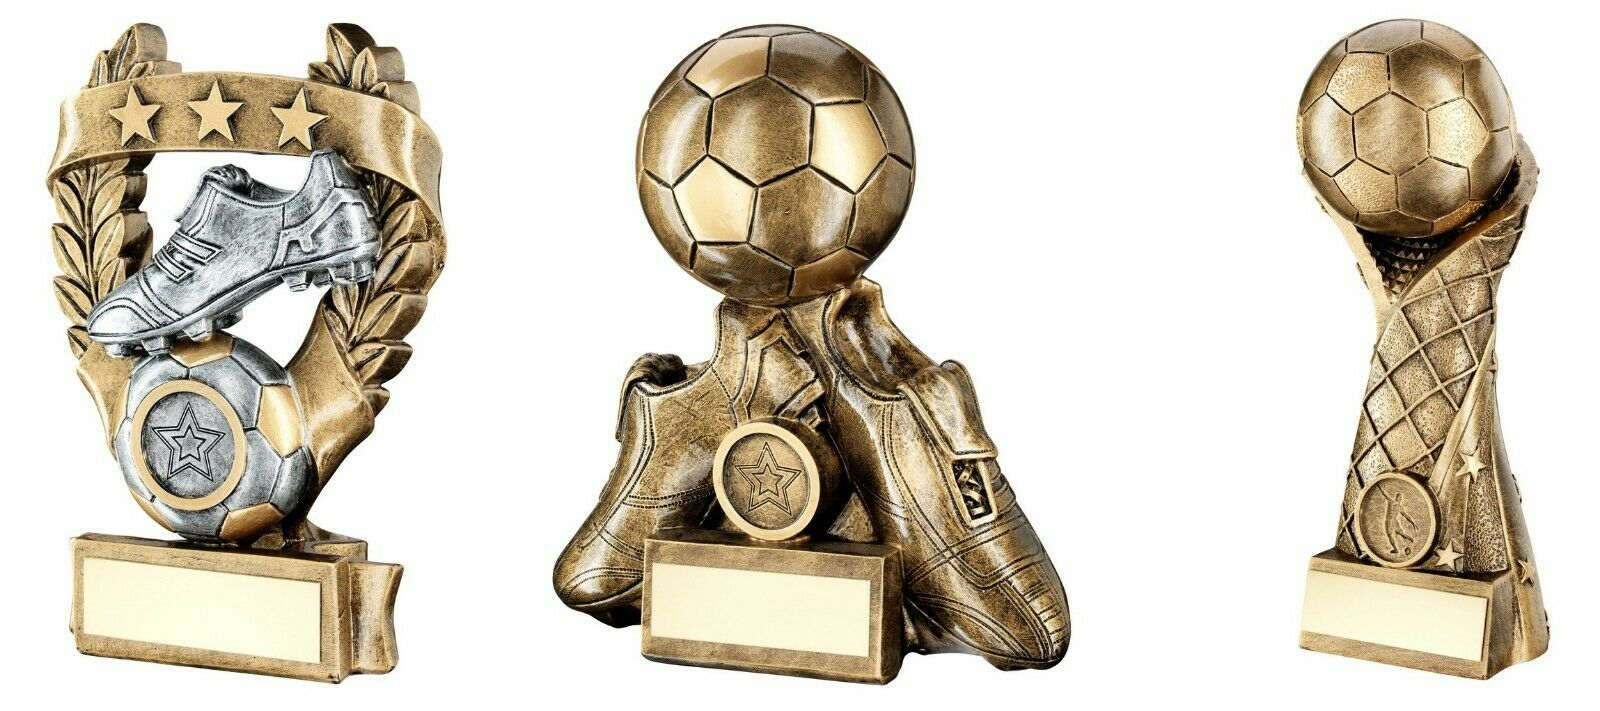 5,6 & 7 inch Football Trophy Awards engraved post free (RRP .99)